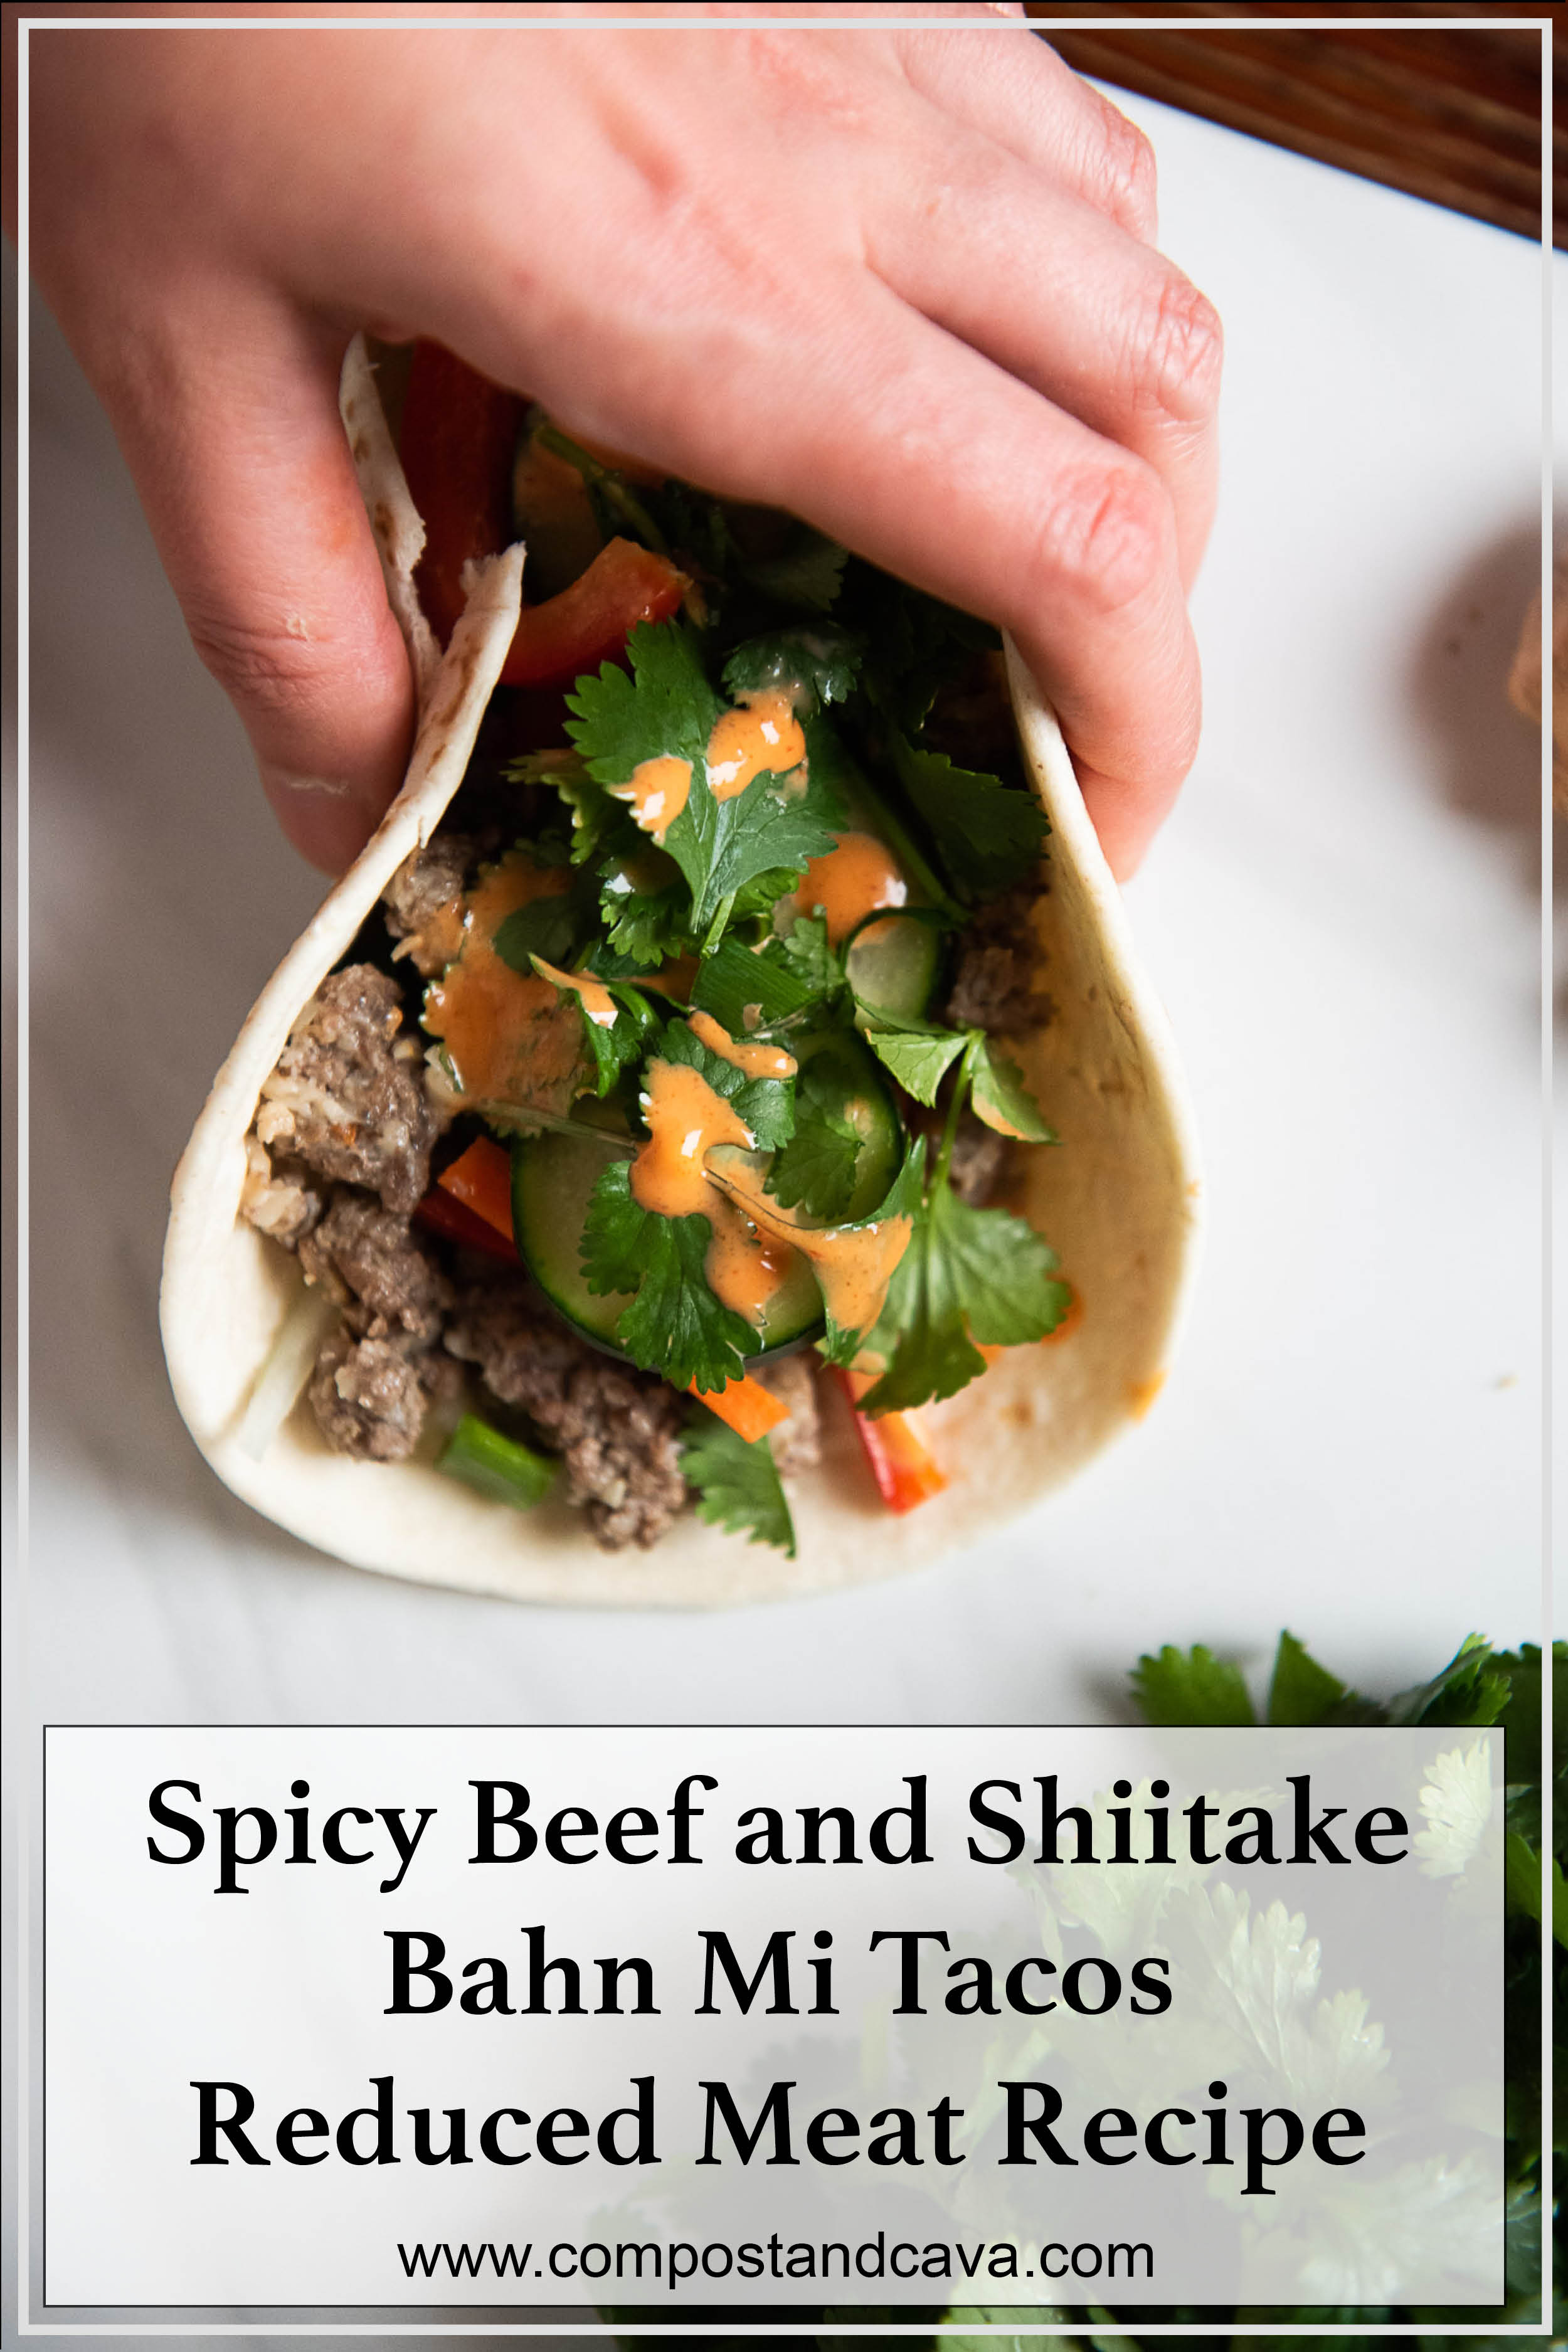 Spicy Beef and Shiitake Bahn Mi Tacos (Reduced Meat)